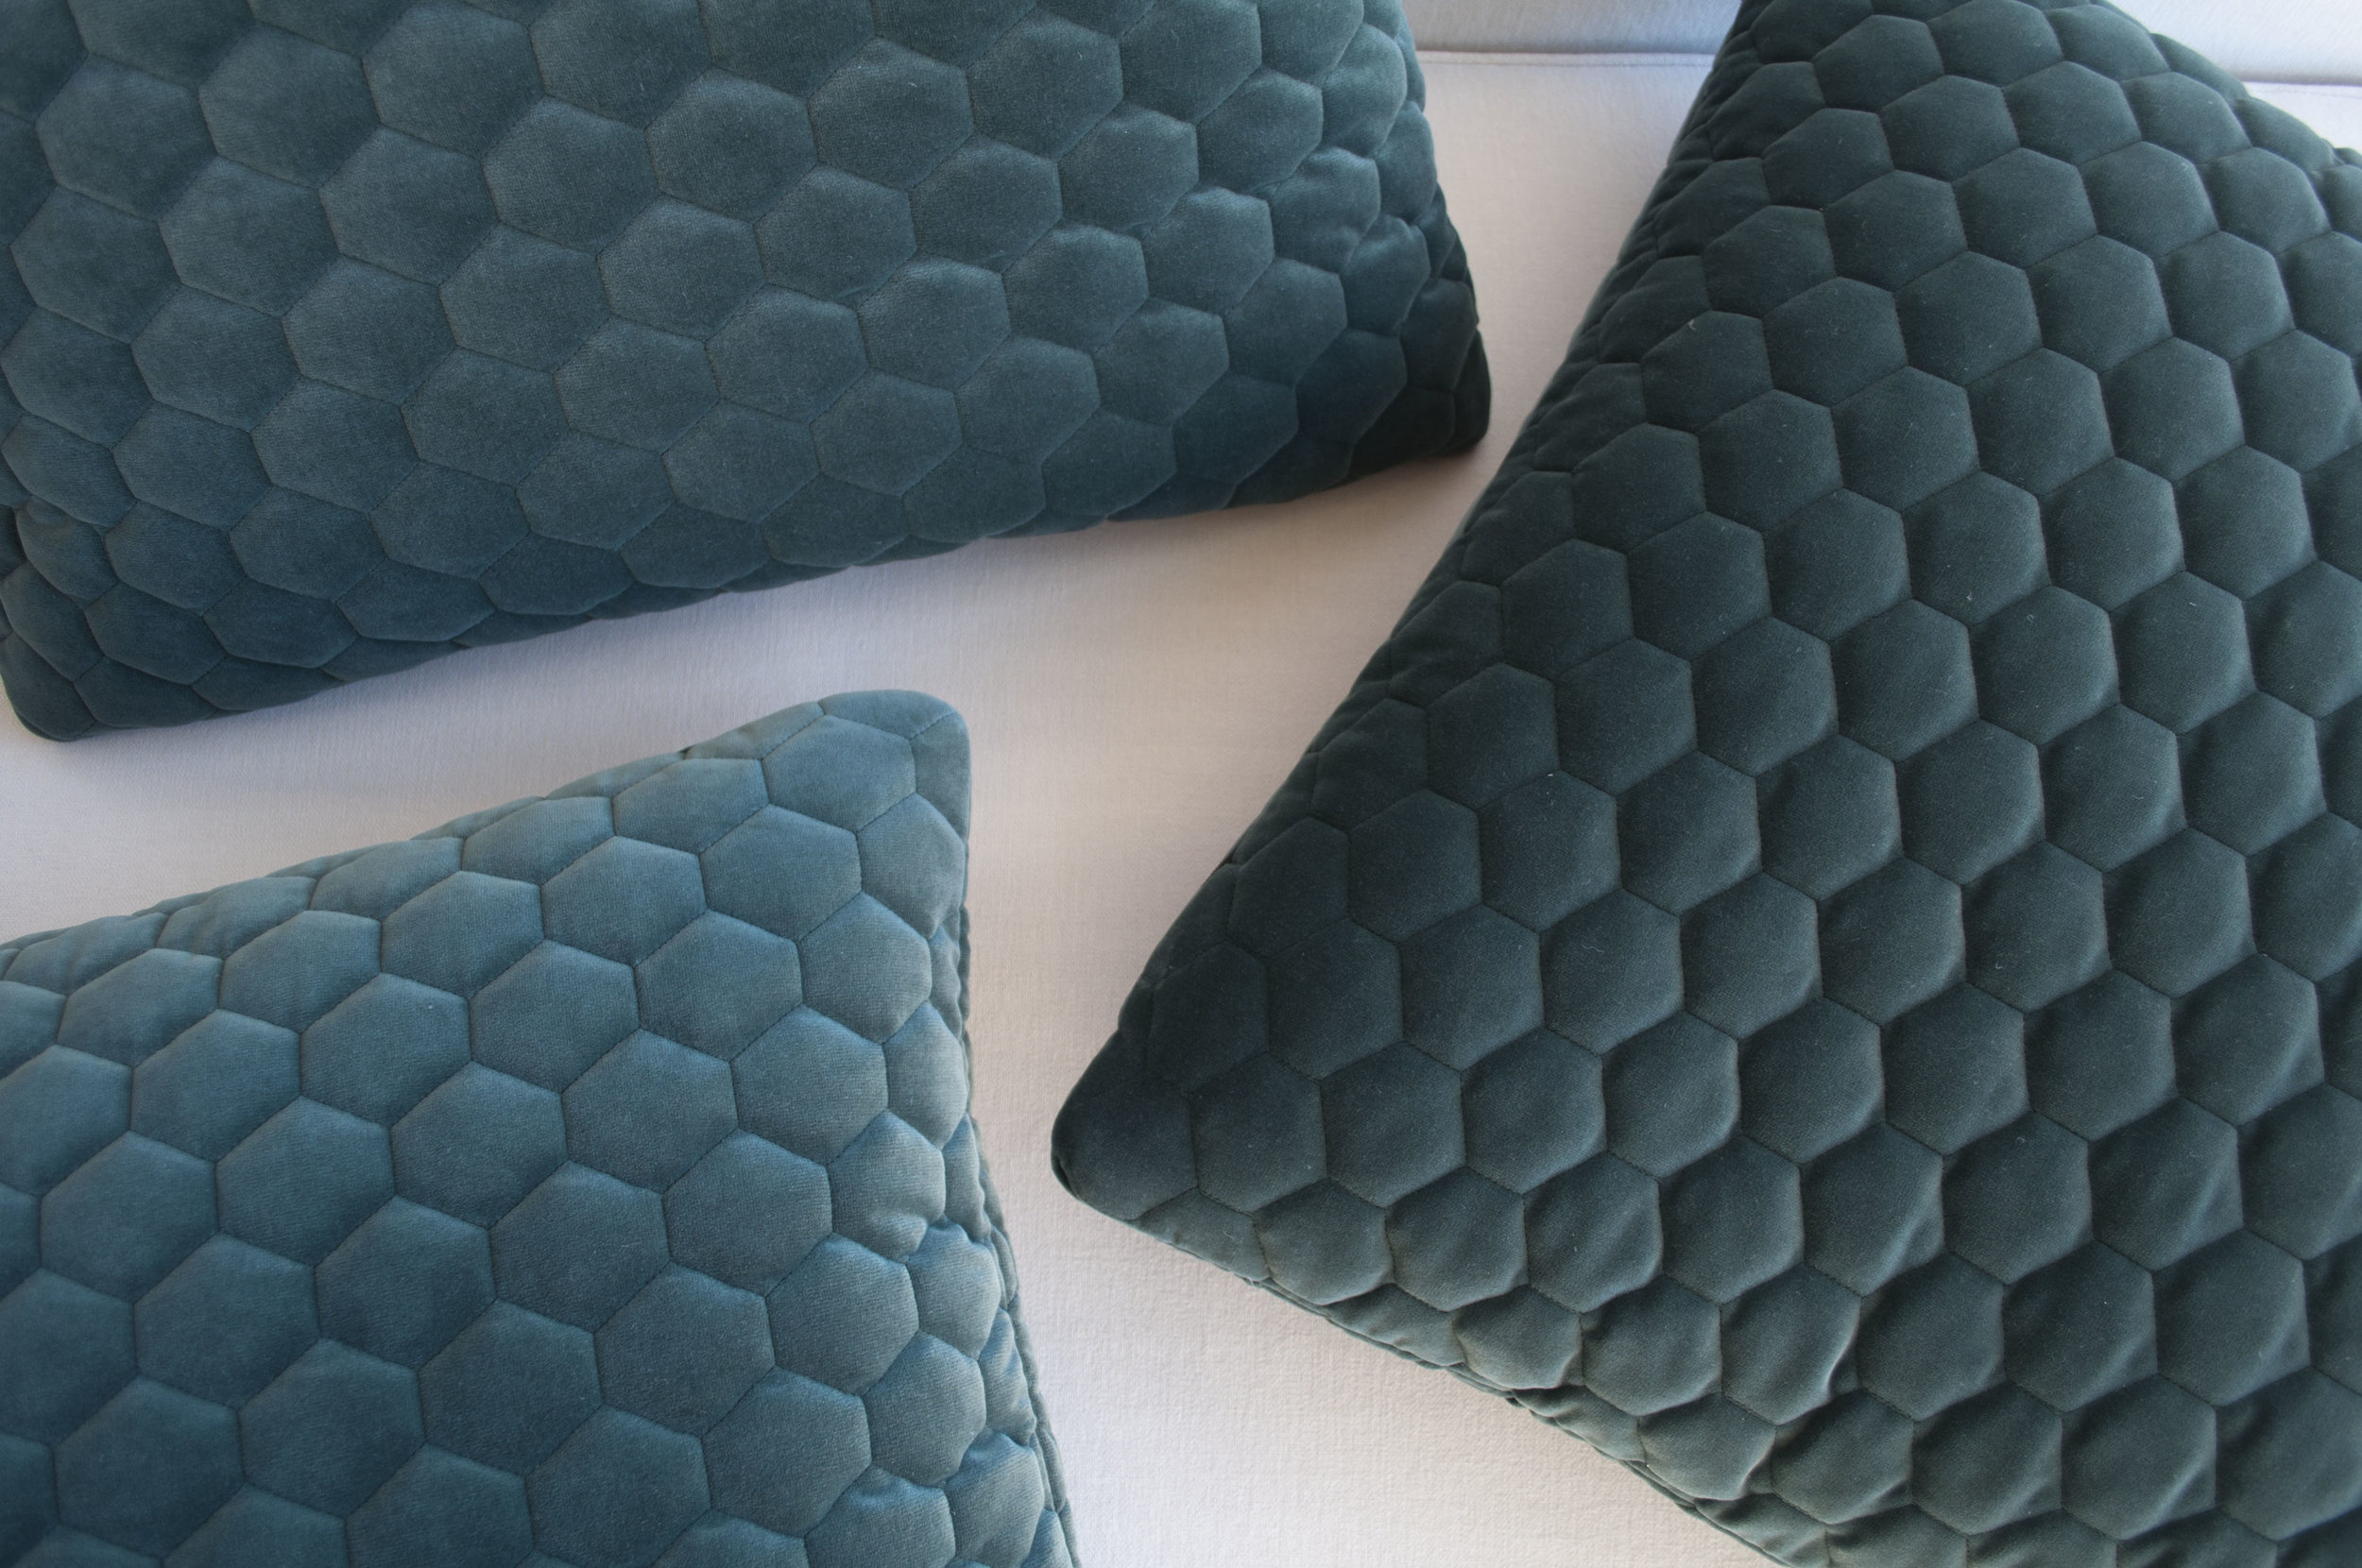 Euro toss pillows featuring Kirkby Design's Cloud fabric, in Evergreen.